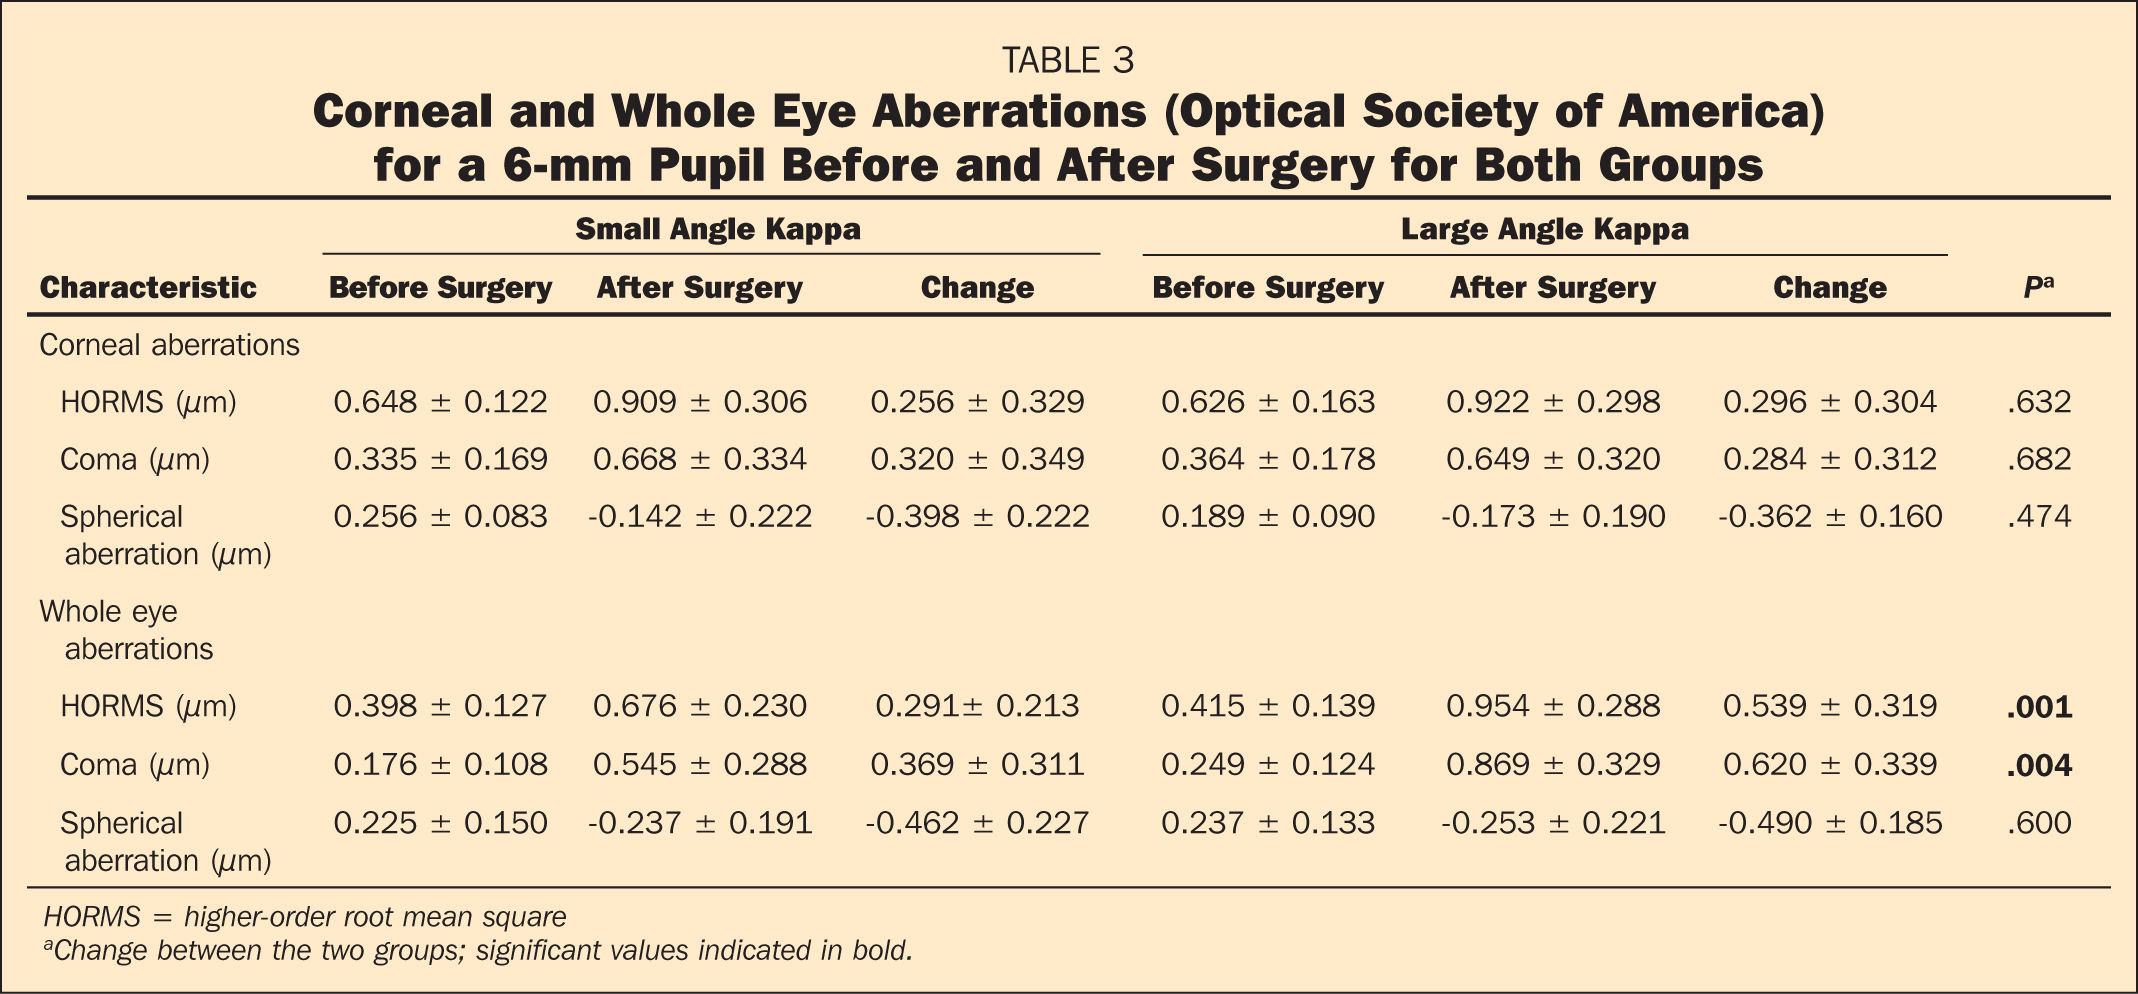 Corneal and Whole Eye Aberrations (Optical Society of America) for a 6-mm Pupil Before and After Surgery for Both Groups